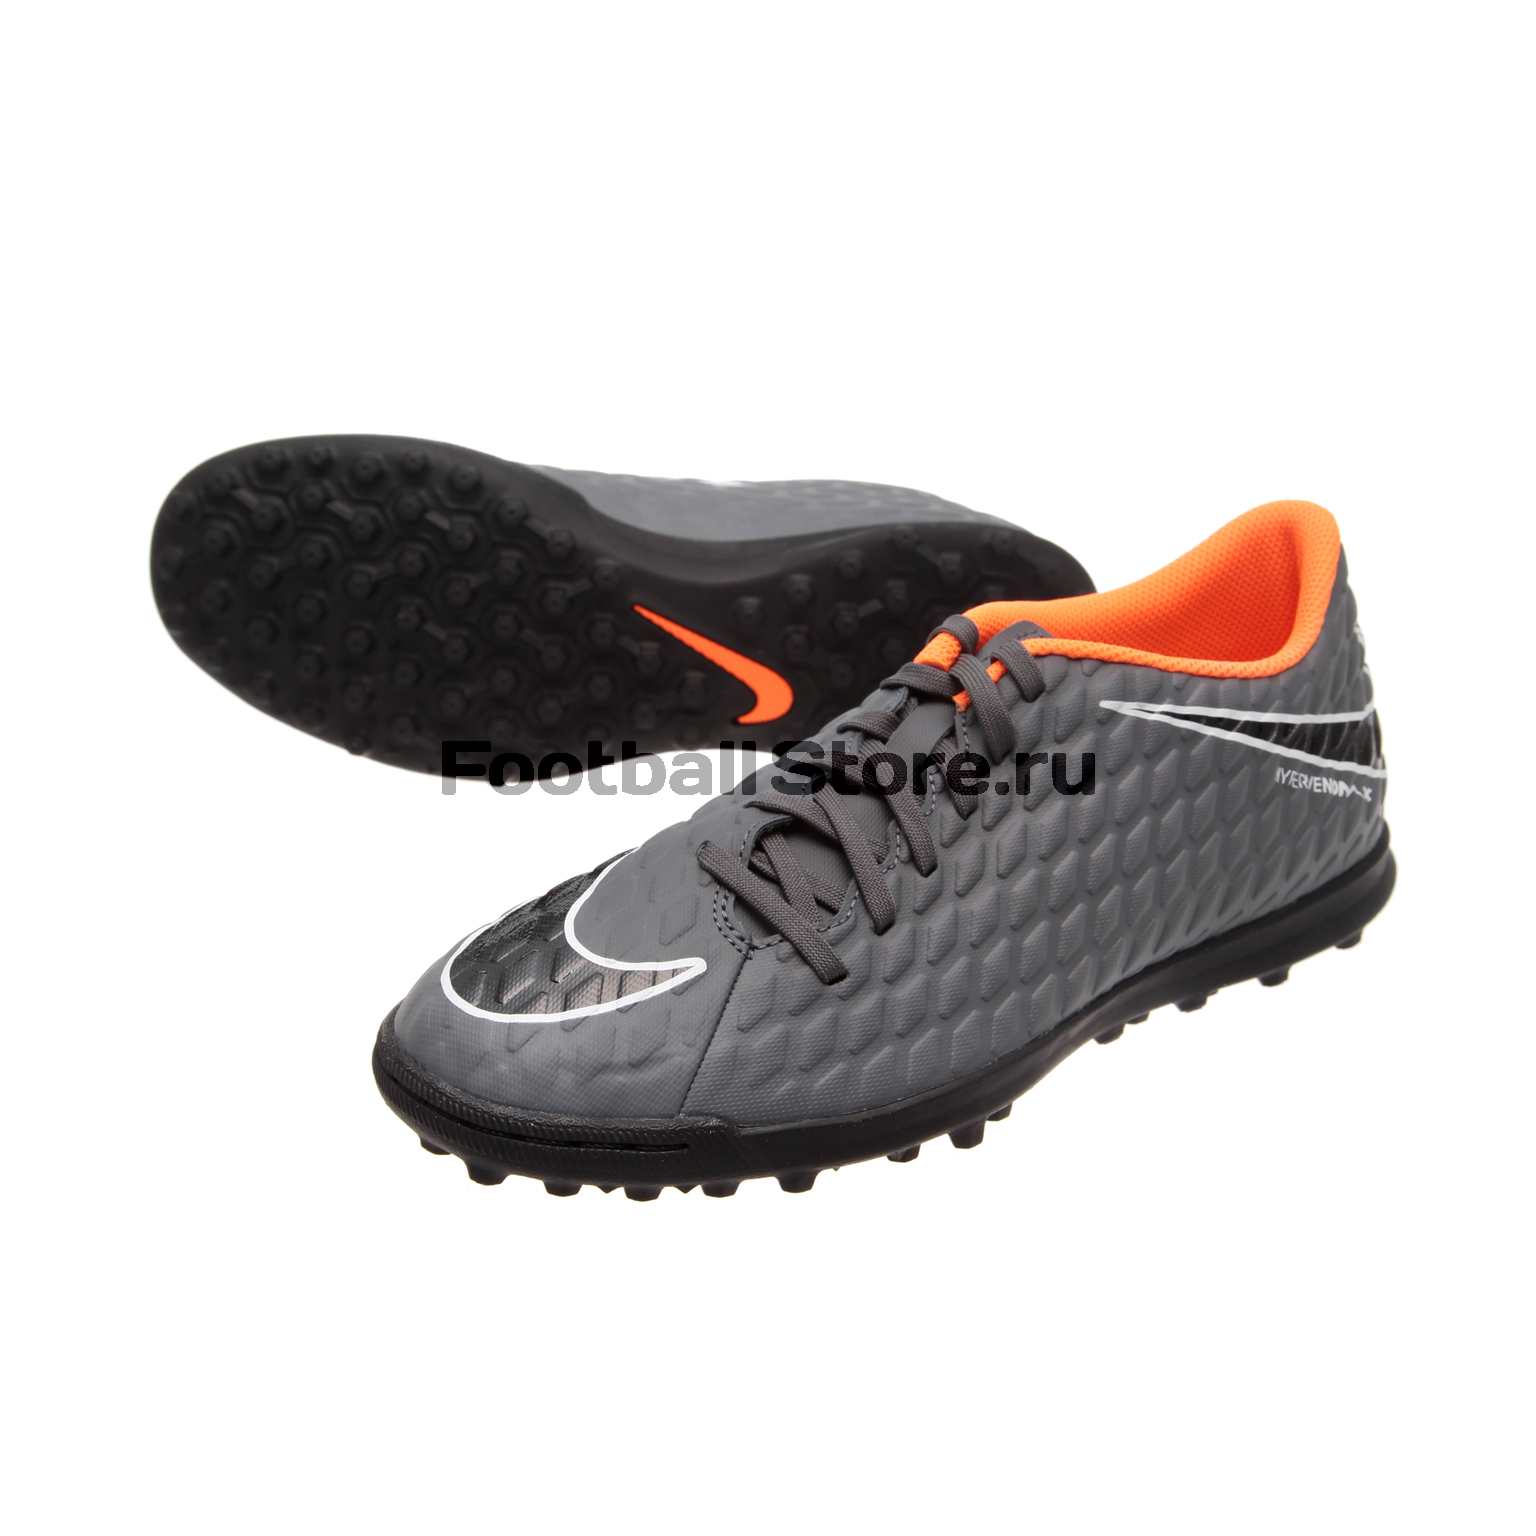 Шиповки Nike PhantomX 3 Club TF AH7281-081 детские бутсы nike бутсы nike jr phantom 3 elite df fg ah7292 081